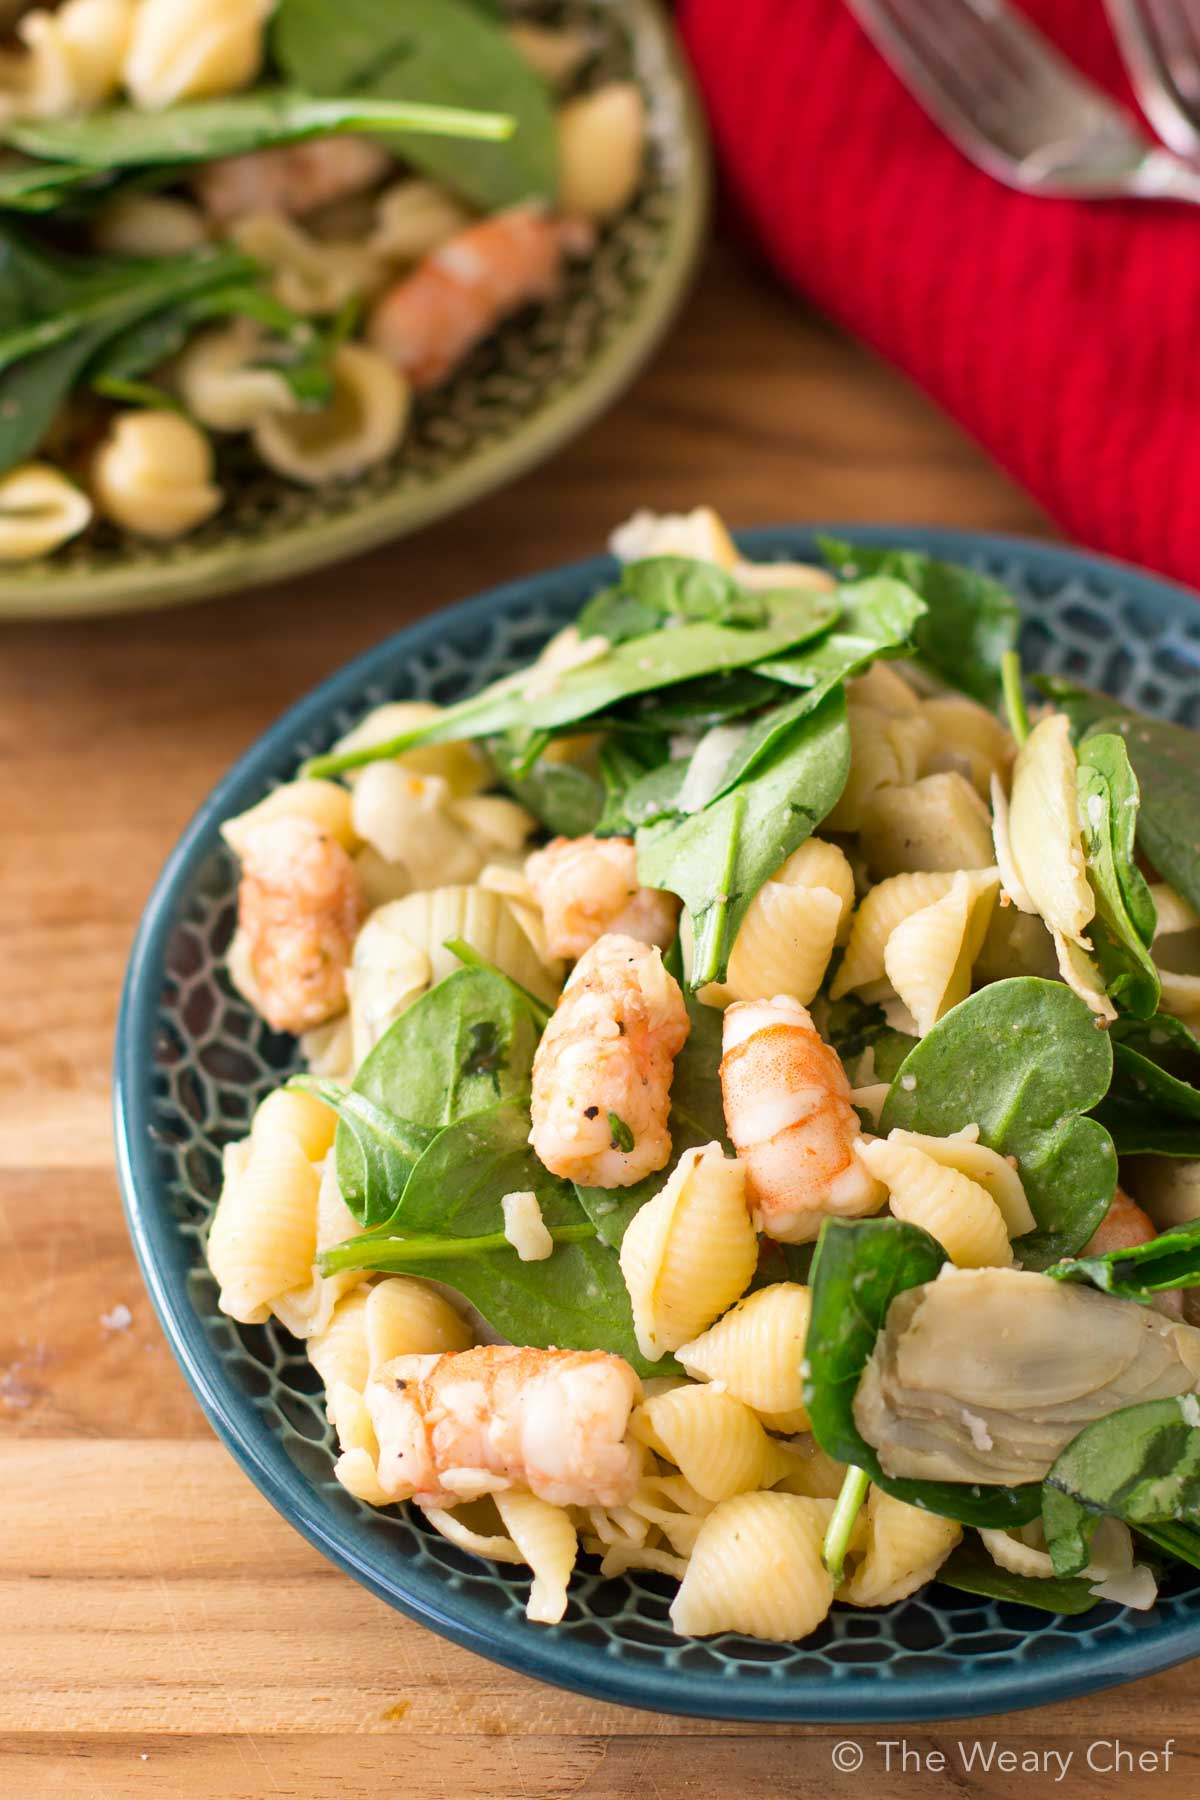 This shrimp pasta salad with spinach and artichokes is a perfect warm weather dinner or potluck dish! It's quick to make and can be served cold or slightly warm.